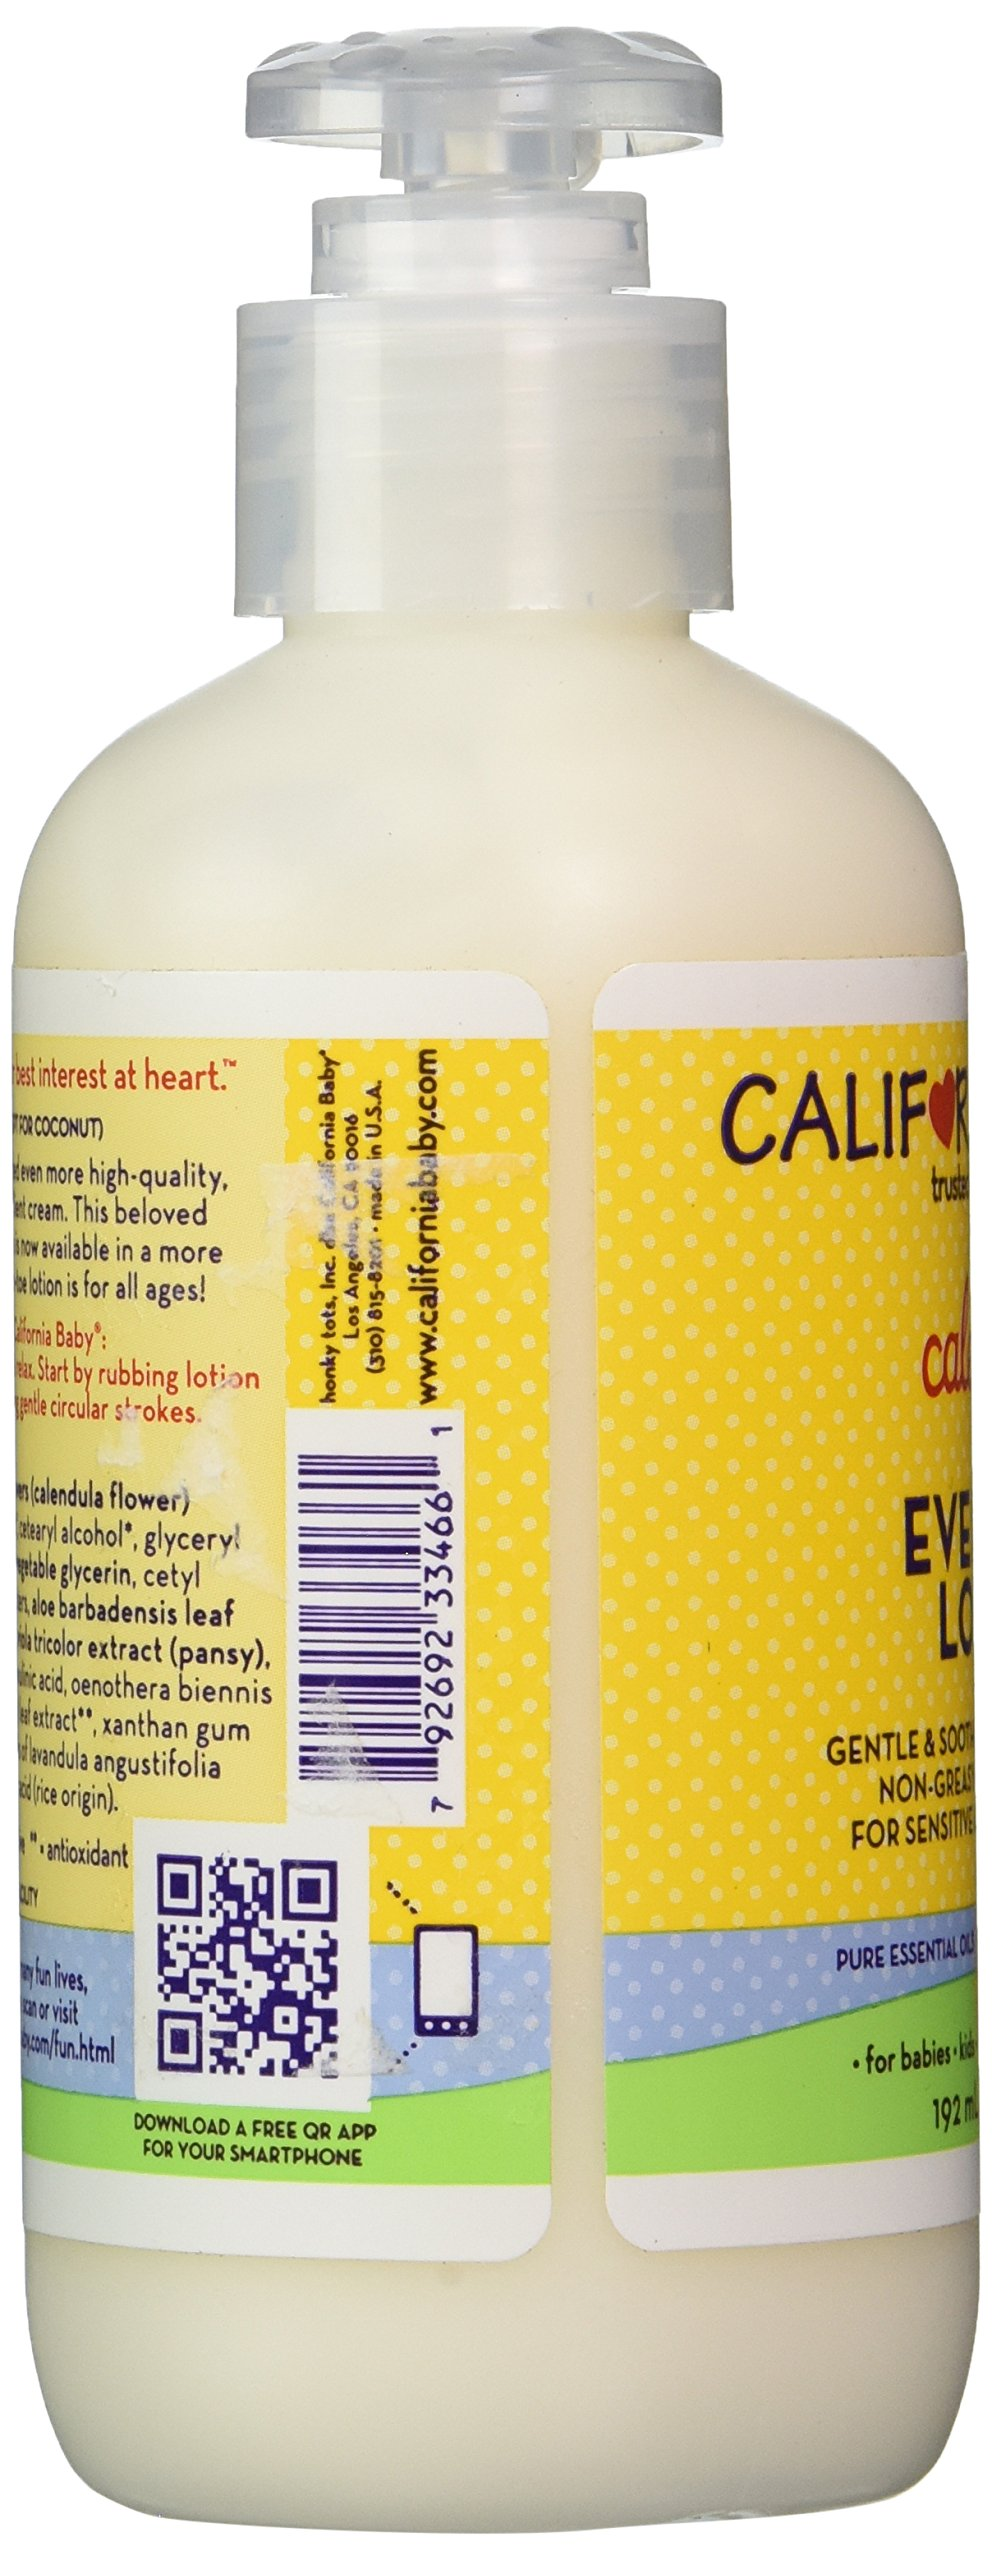 California Baby Everyday Calendula Lotion, 6.5 Ounce by California Baby (Image #4)